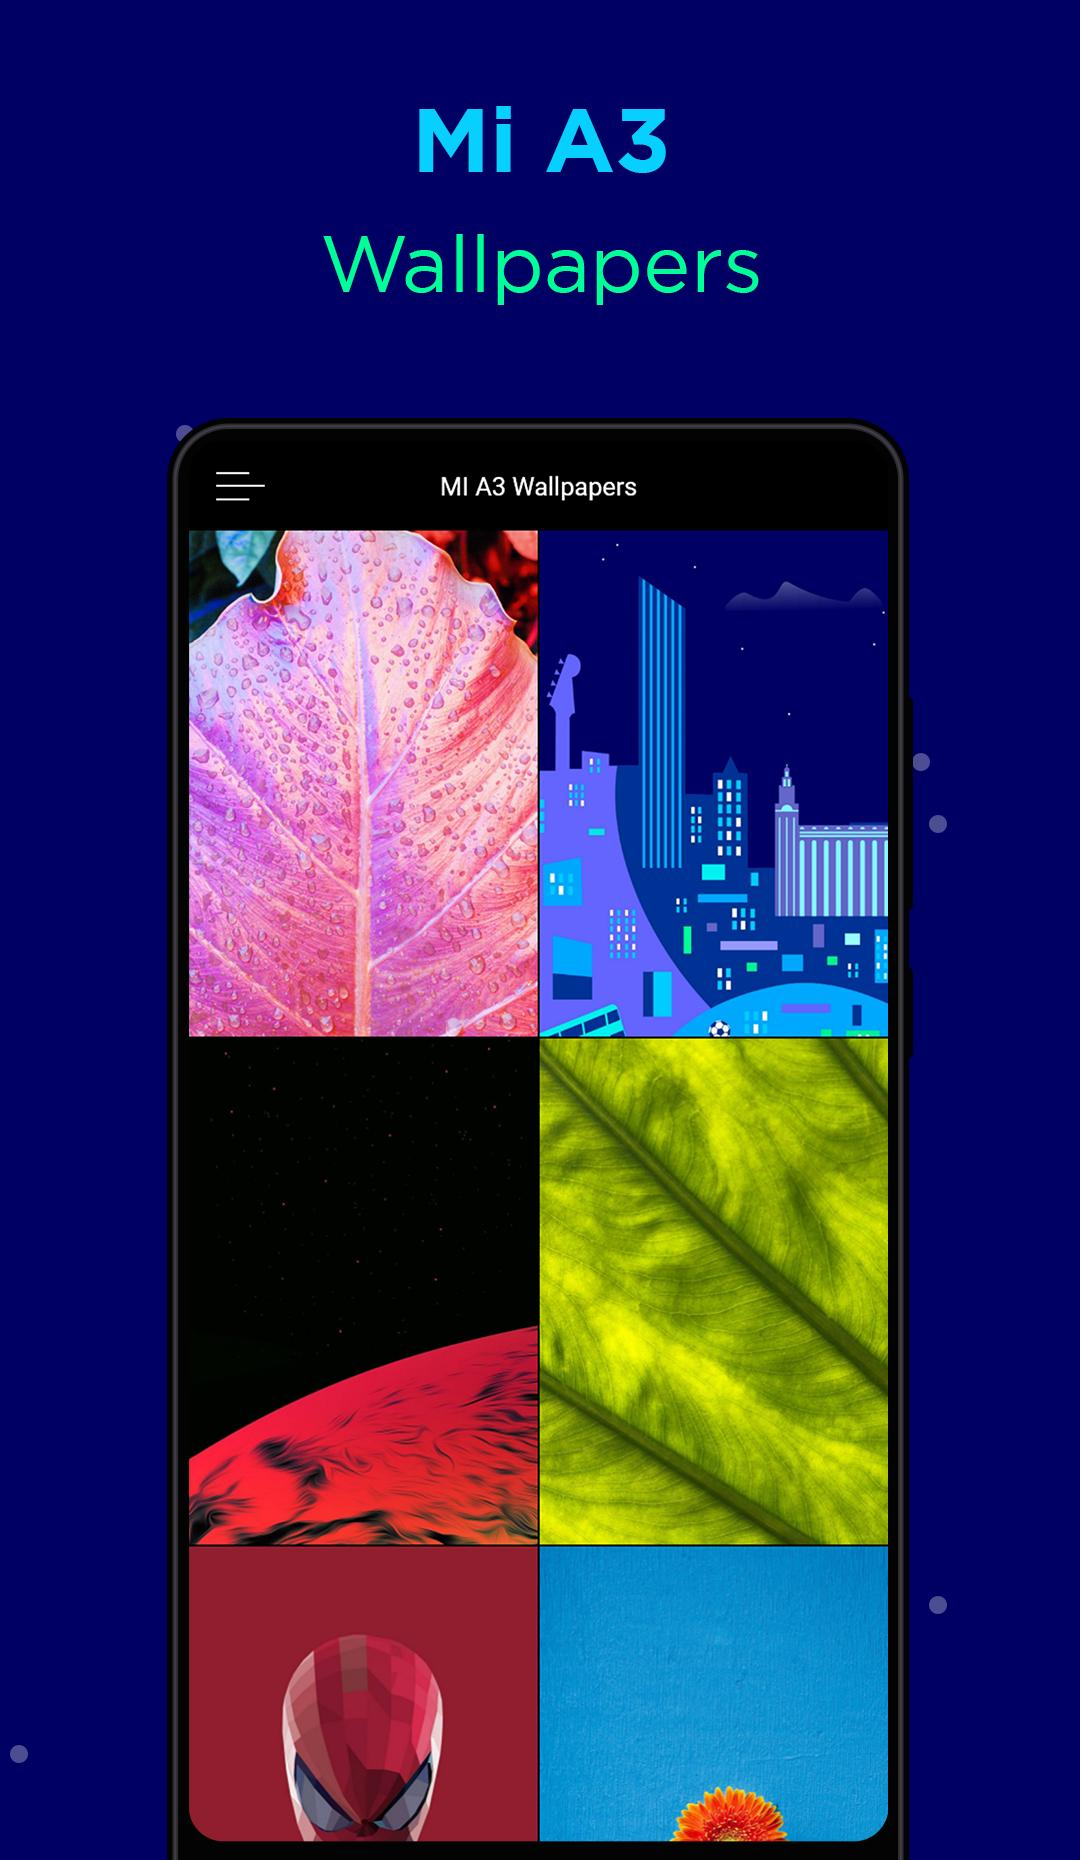 Mi A3 Wallpaper and Backgrounds for Android   APK Download 1080x1860